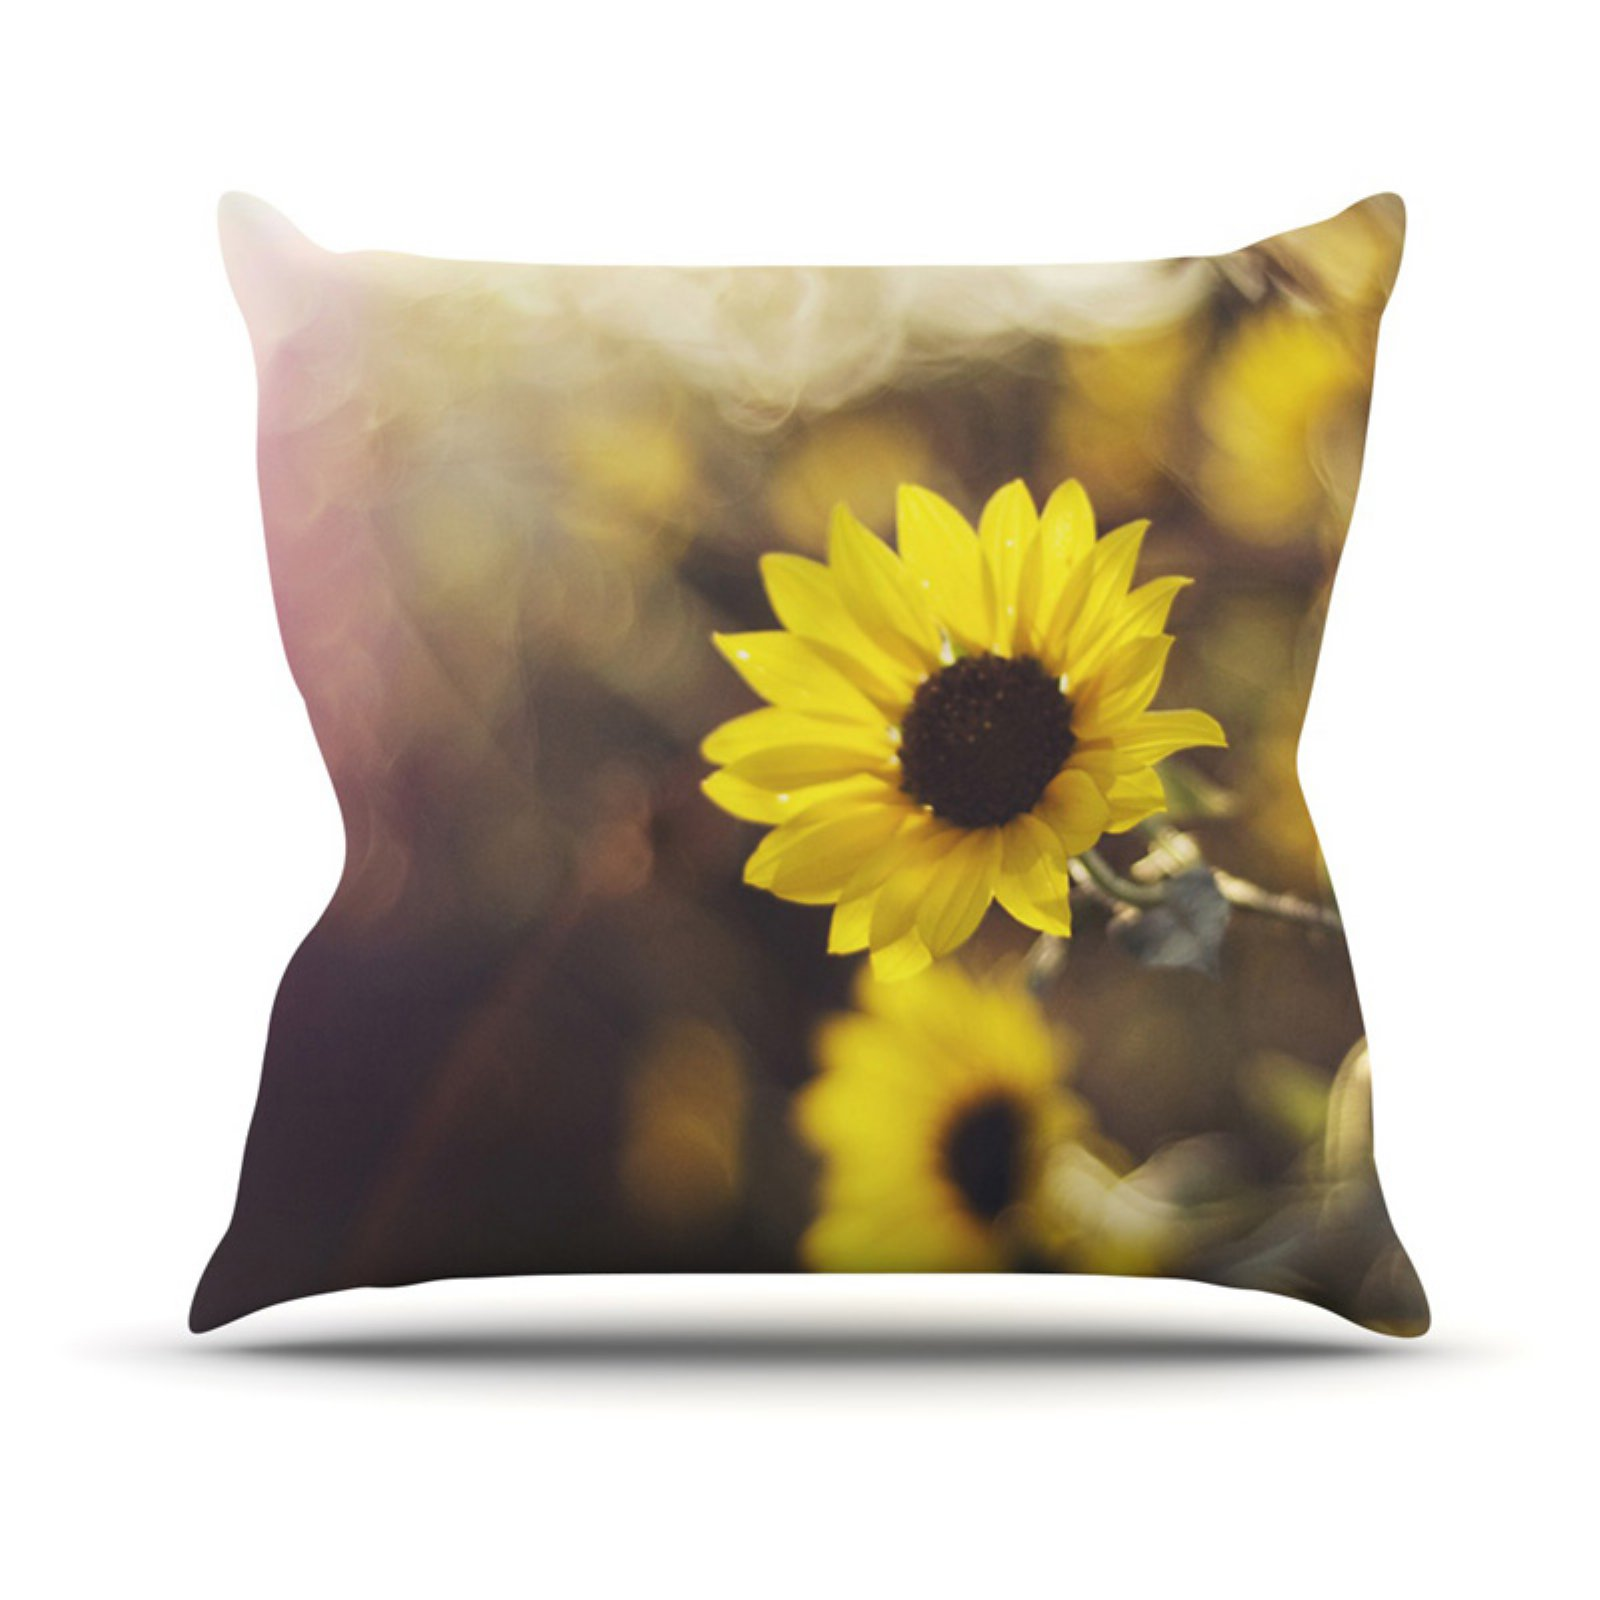 Kess InHouse Libertad Leal Magic Light Flower Outdoor Throw Pillow